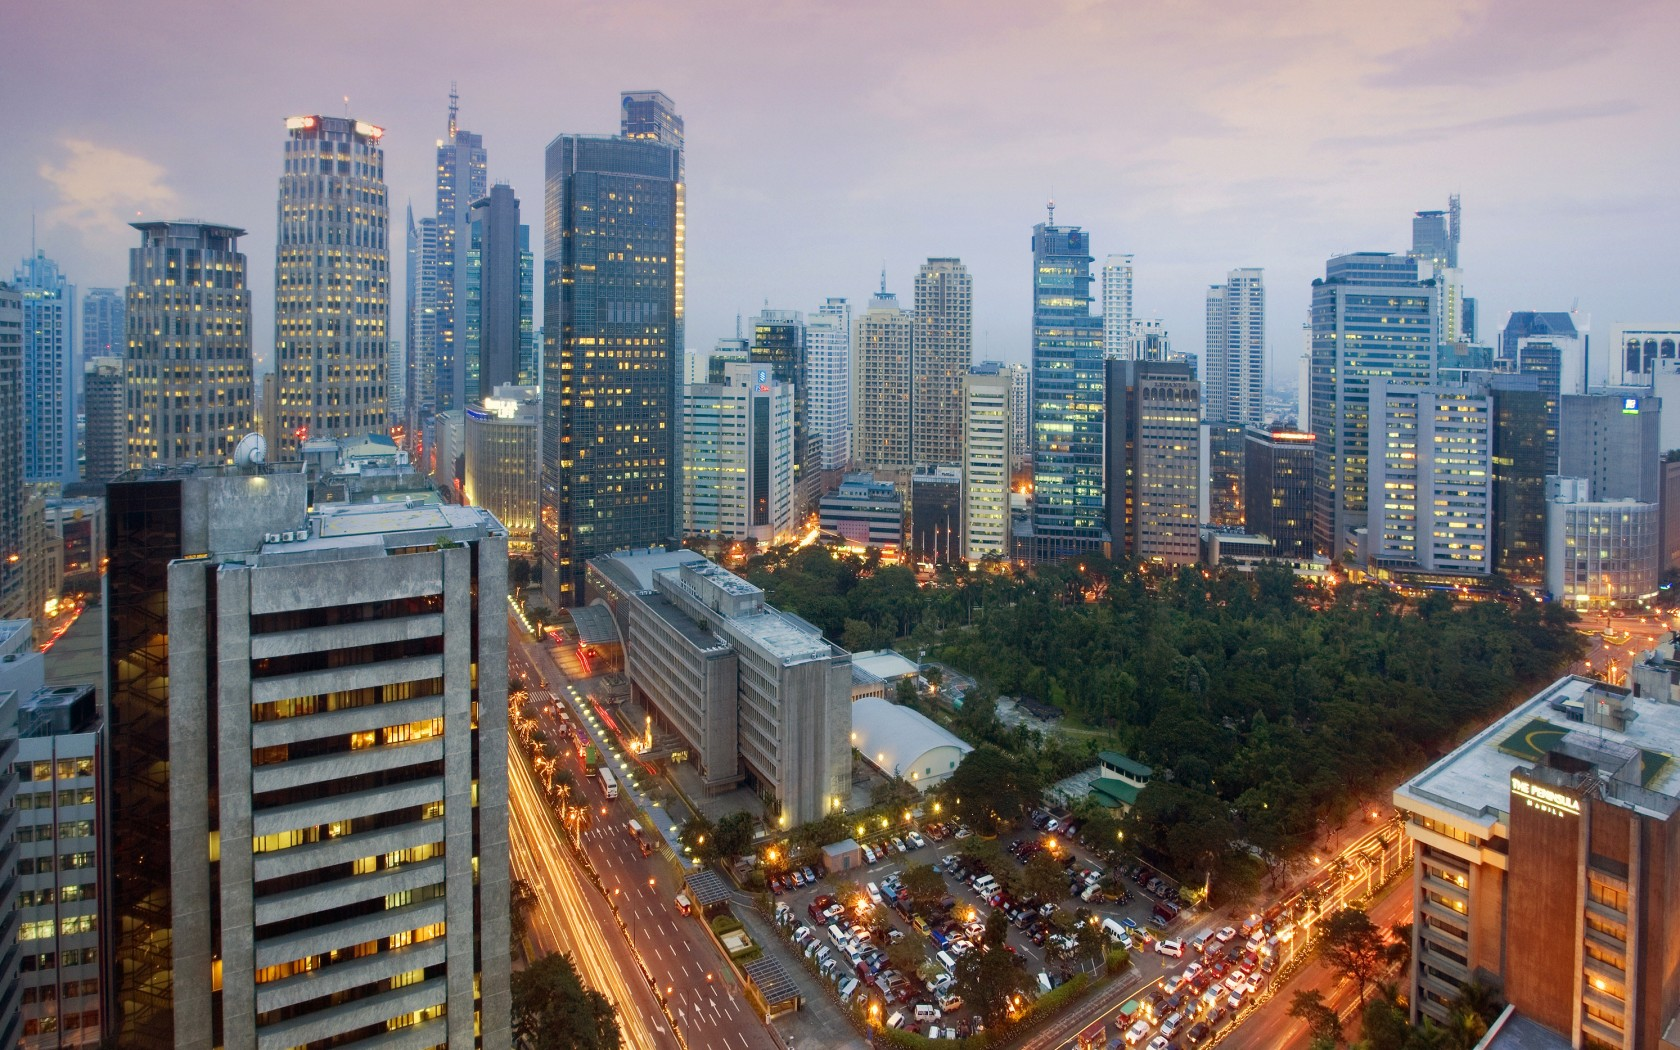 Philippine businesses are most optimistic in ASEAN